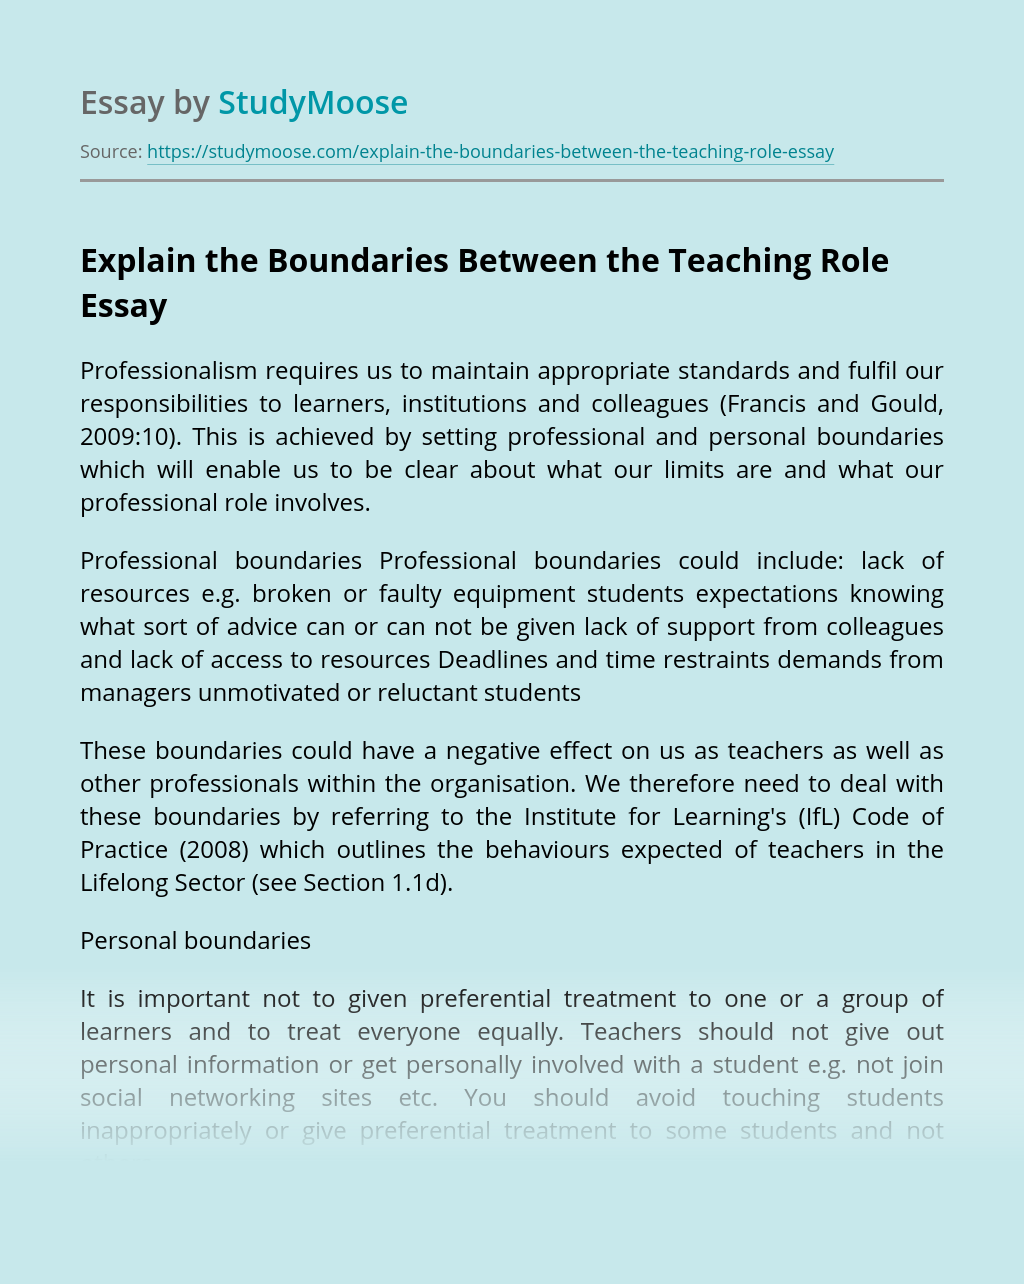 Explain the Boundaries Between the Teaching Role